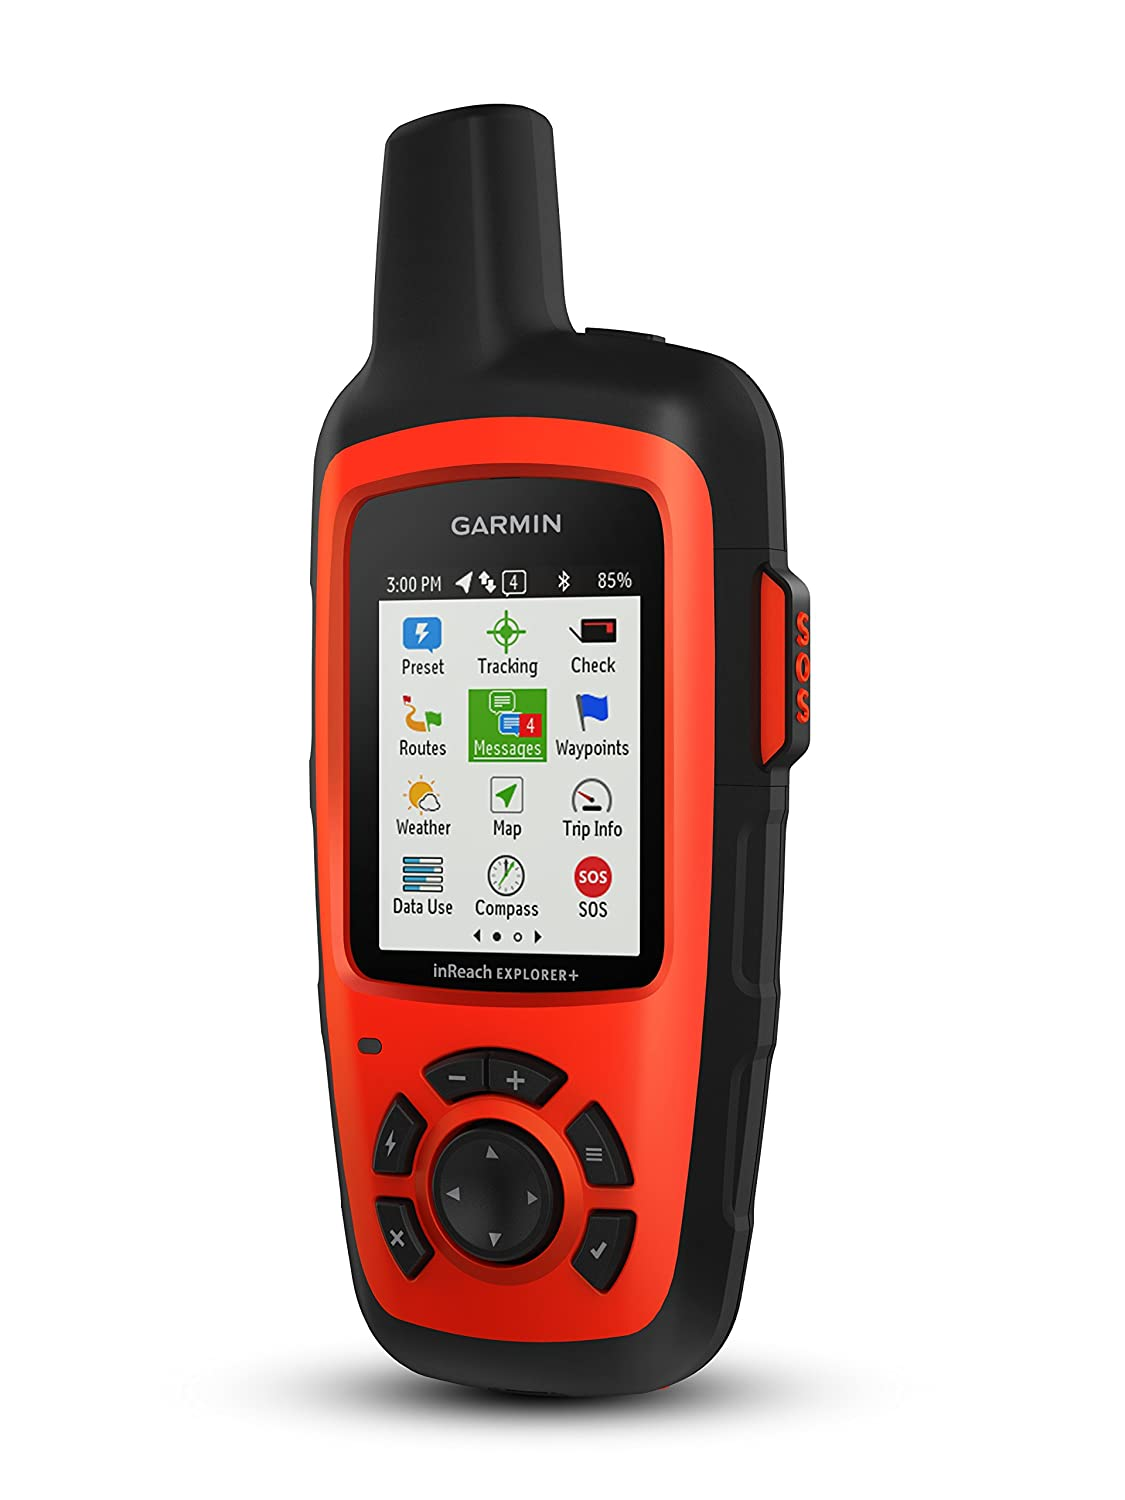 Amazon.com: Garmin Inreach Explorer+ We won't often be out of communication, but this satellite two-way messenger, GPS, tracker and weather device gives us peace of mind.